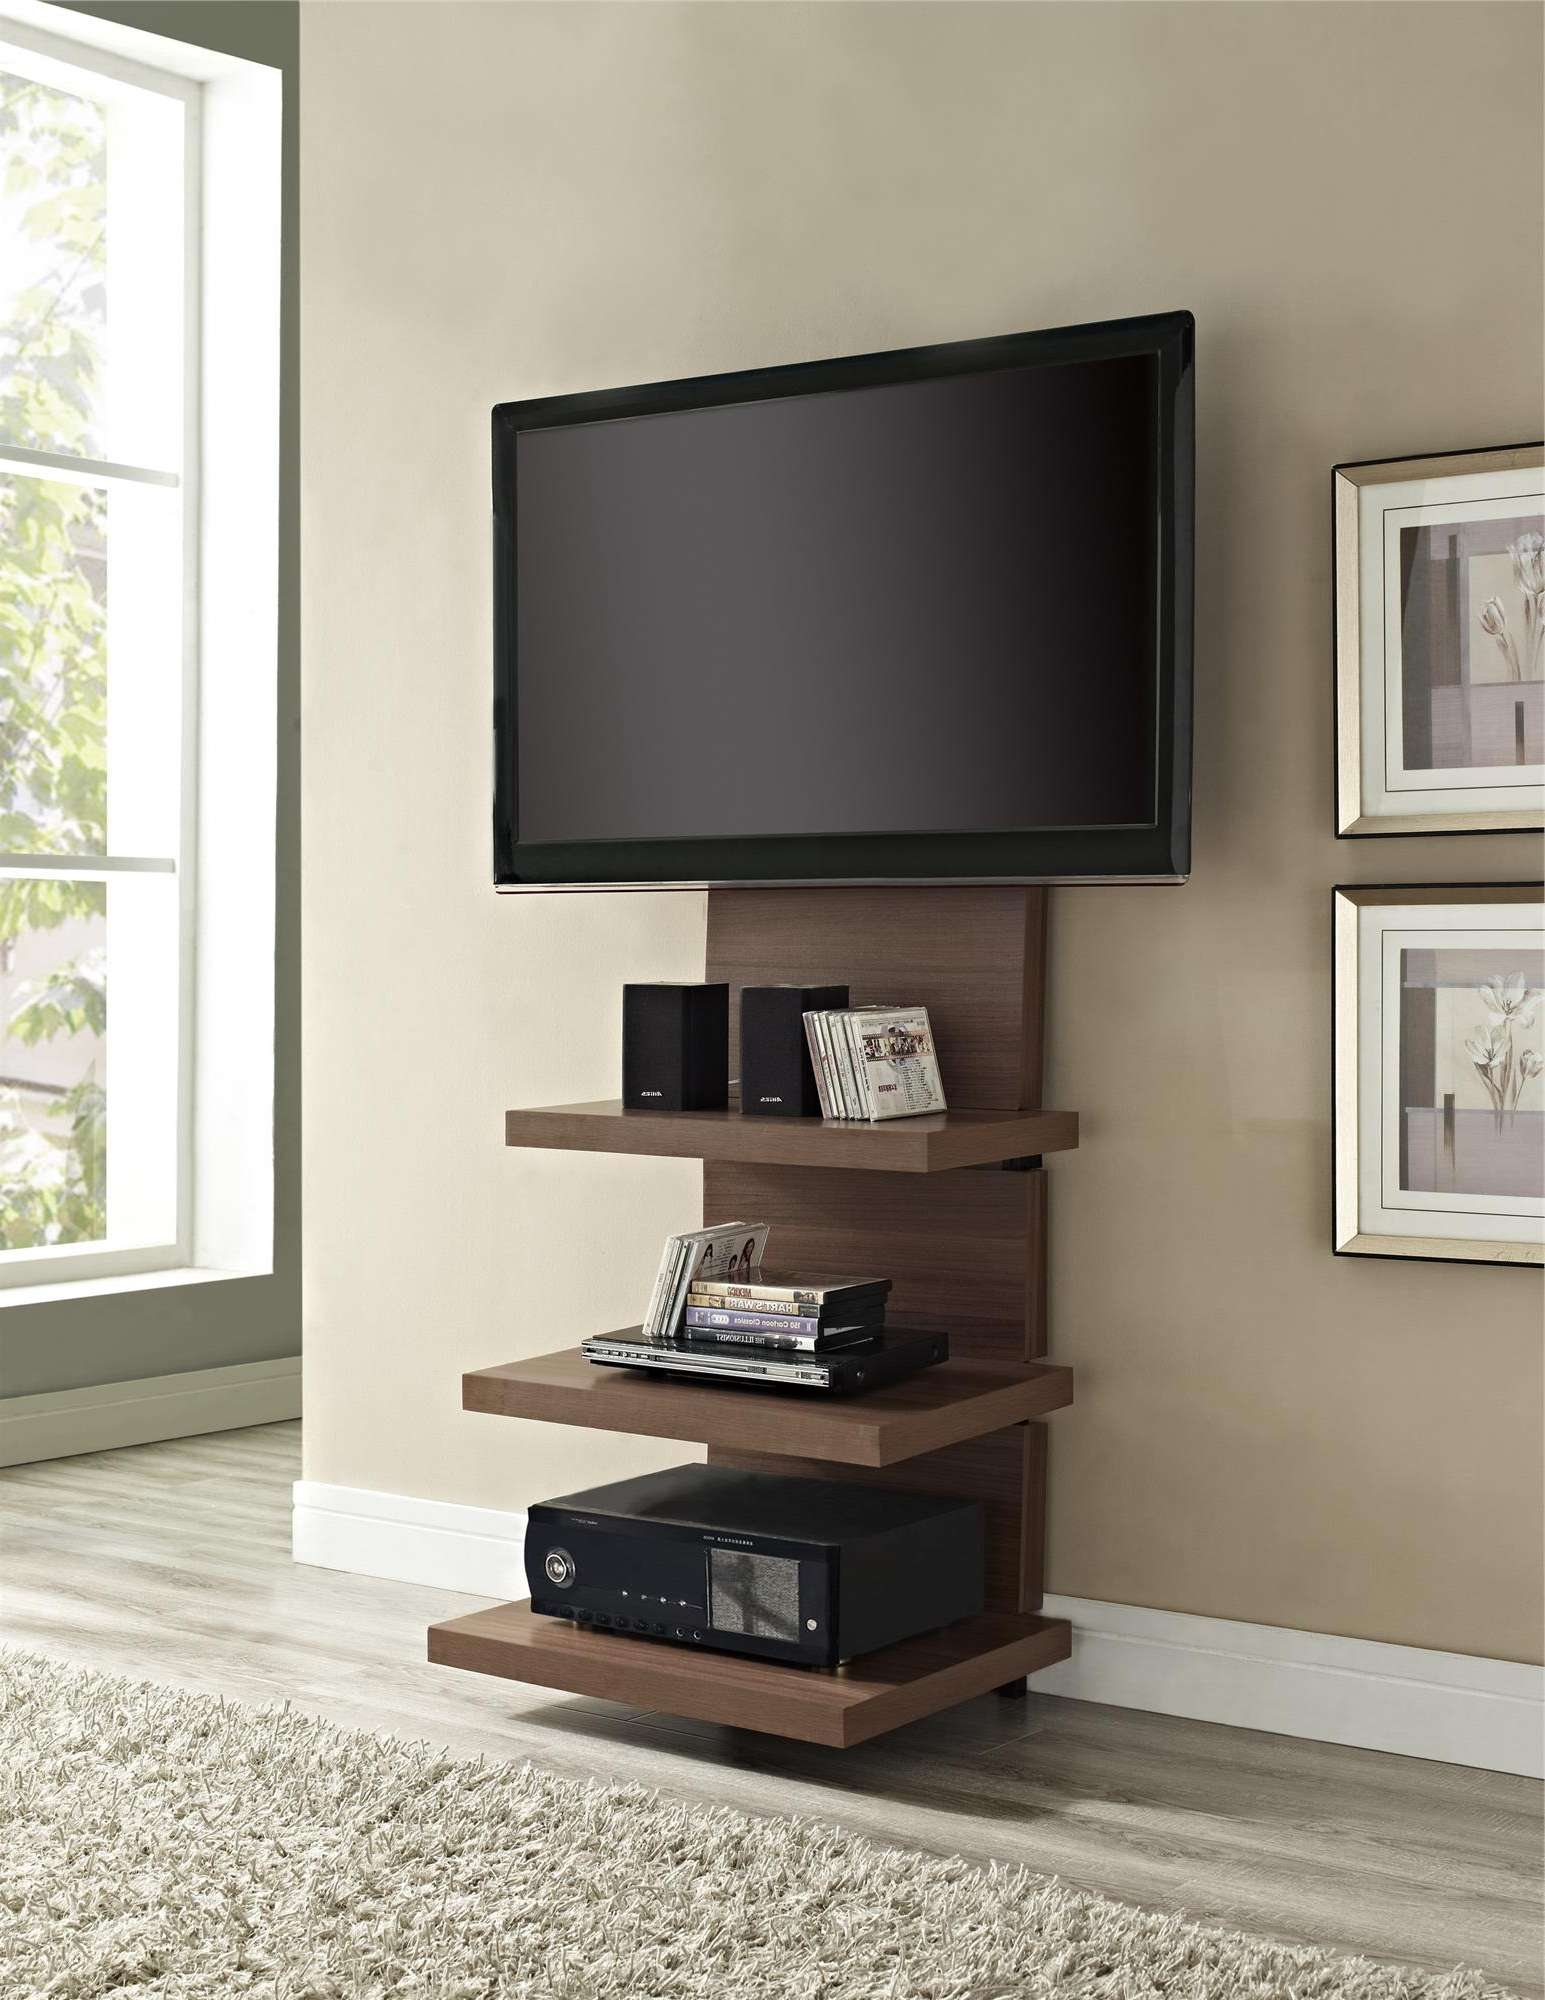 15 The Best Single Shelf Tv Stands